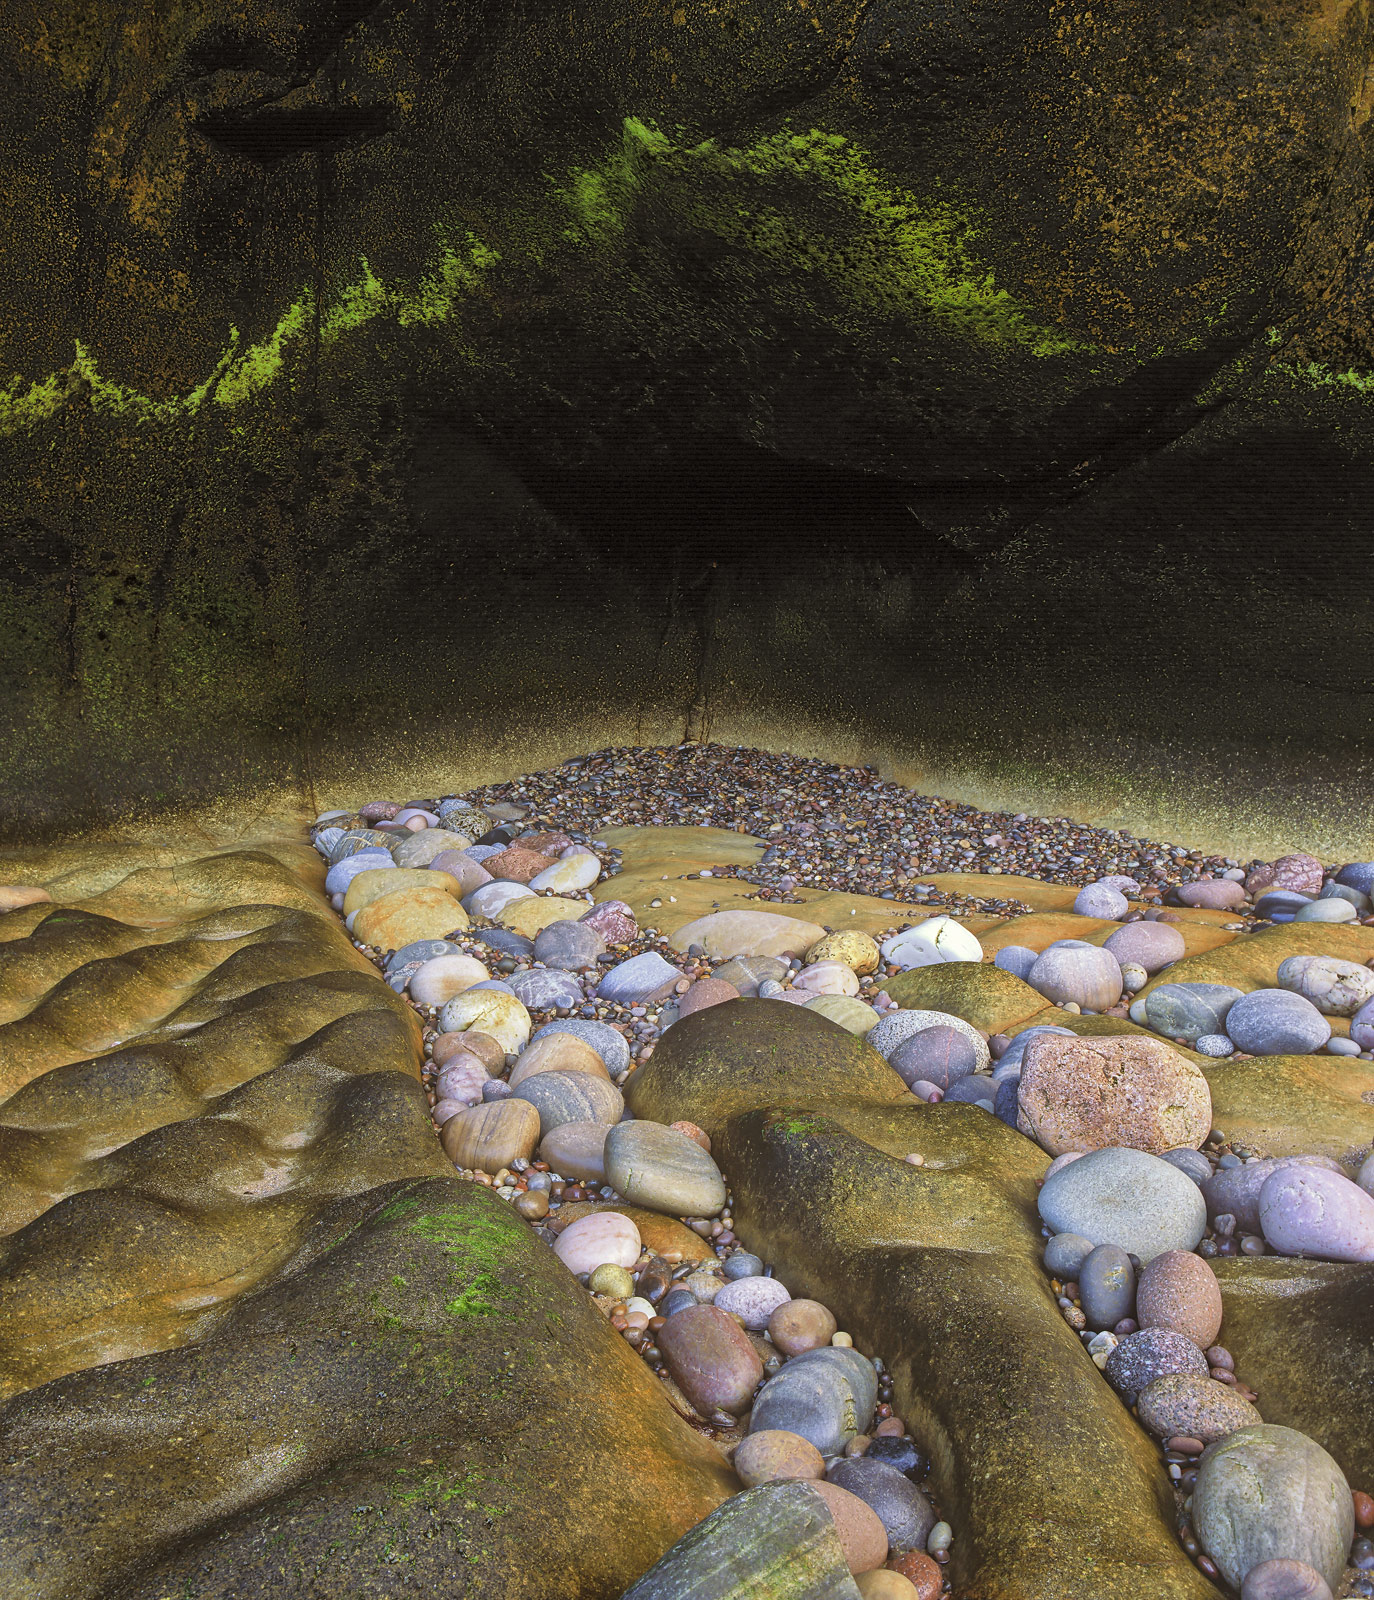 Wall Art Cove Bay, Cove Bay, Moray, Scotland, coloured, pebbles, patterns, nature, green, algae, scribbled, arc, dimpled, photo